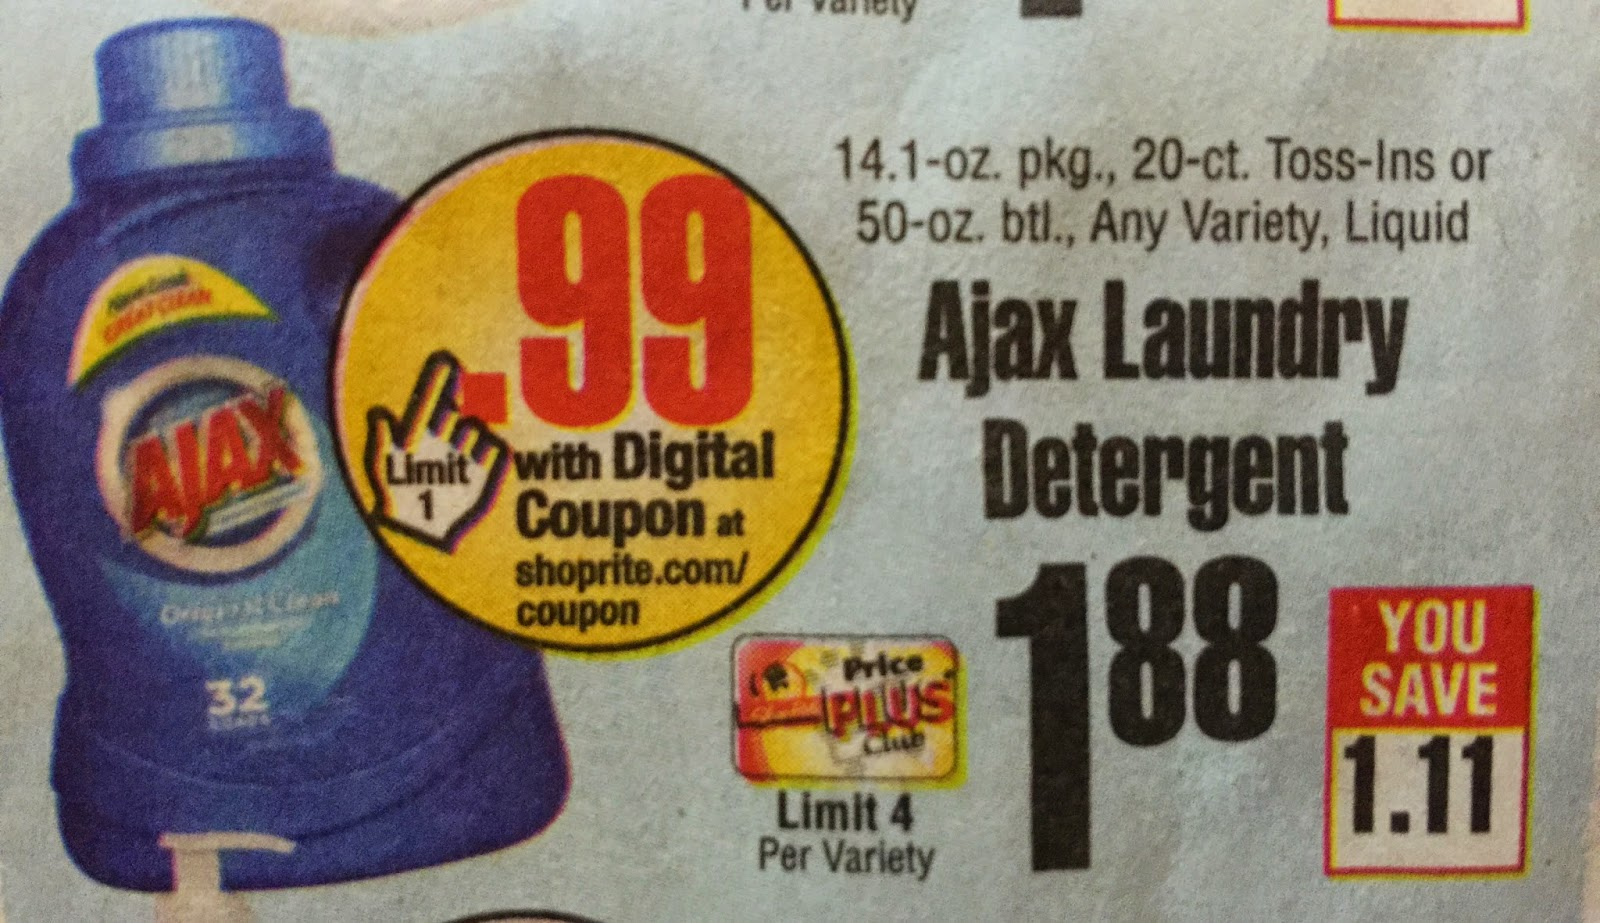 Shoprite Can Can Sale 2015 - Here s a nice and easy deal at shoprite starting sunday ajax laundry detergent will be on sale and we have an ecoupon coming sunday that we can use to get